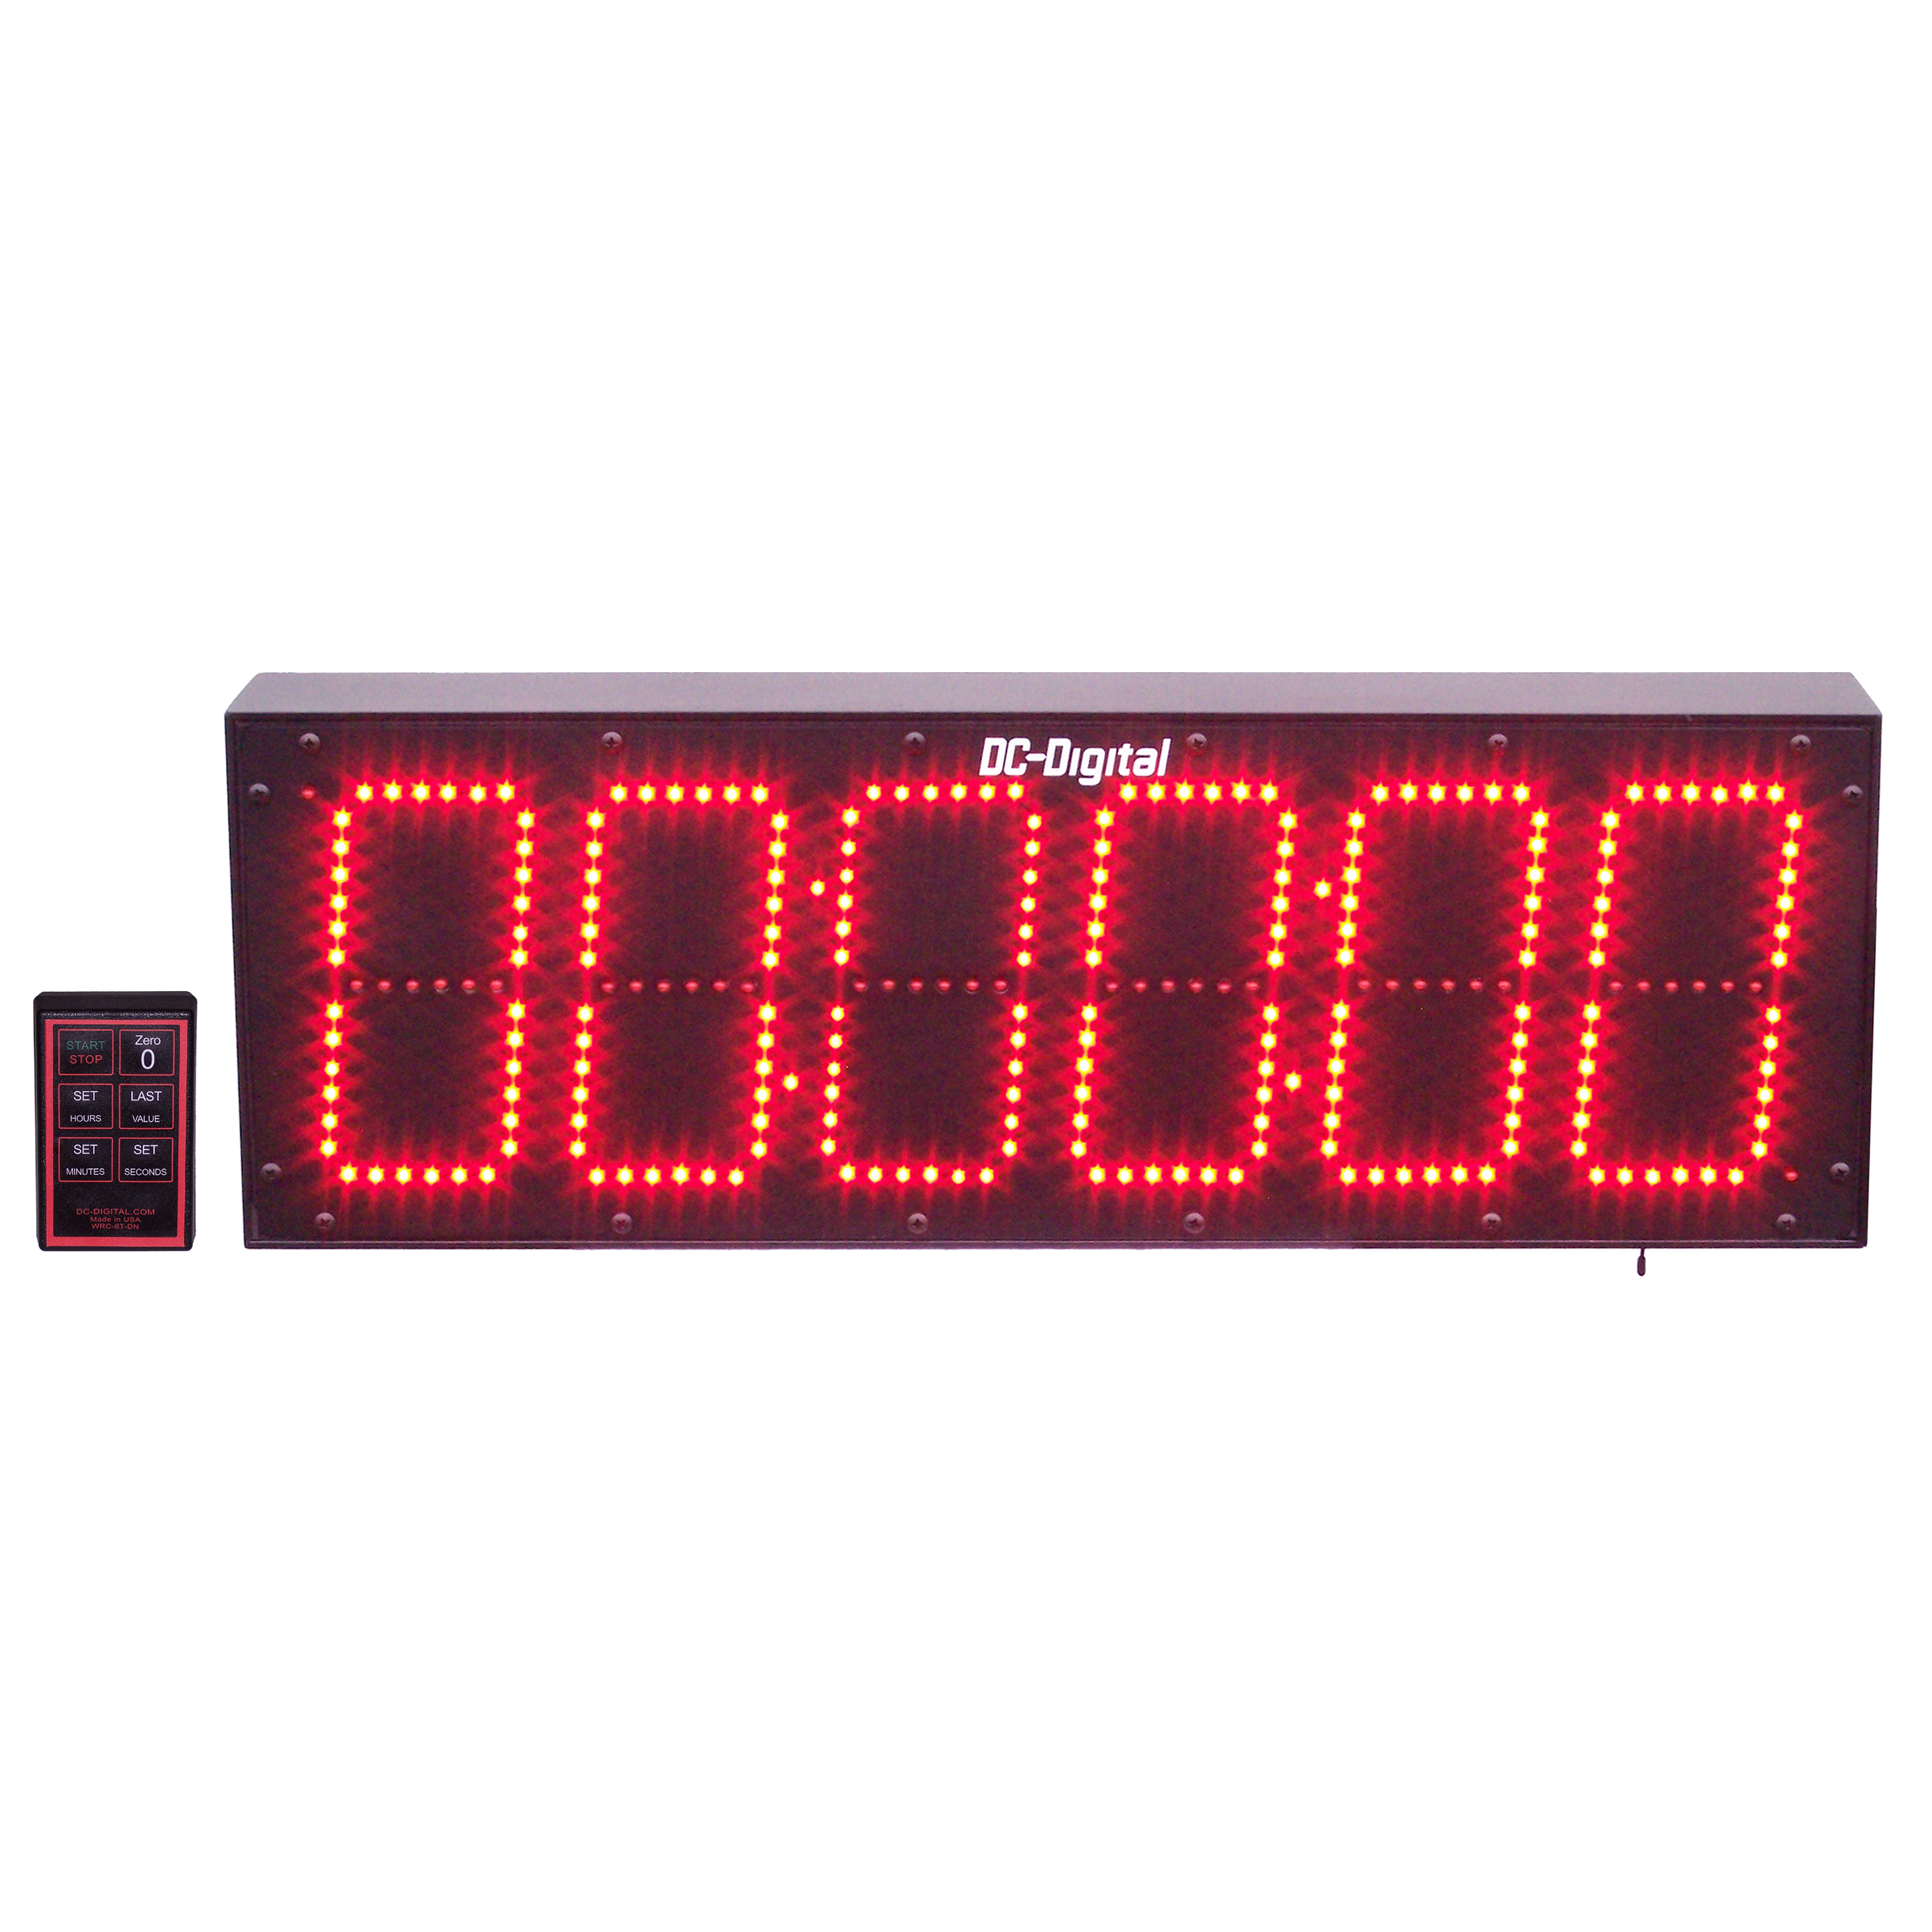 Dc 606t Dn W Rf Wireless Remote Controlled Digital Countdown Timer 6 Inch Digits Hours Minutes Seconds Outdoor